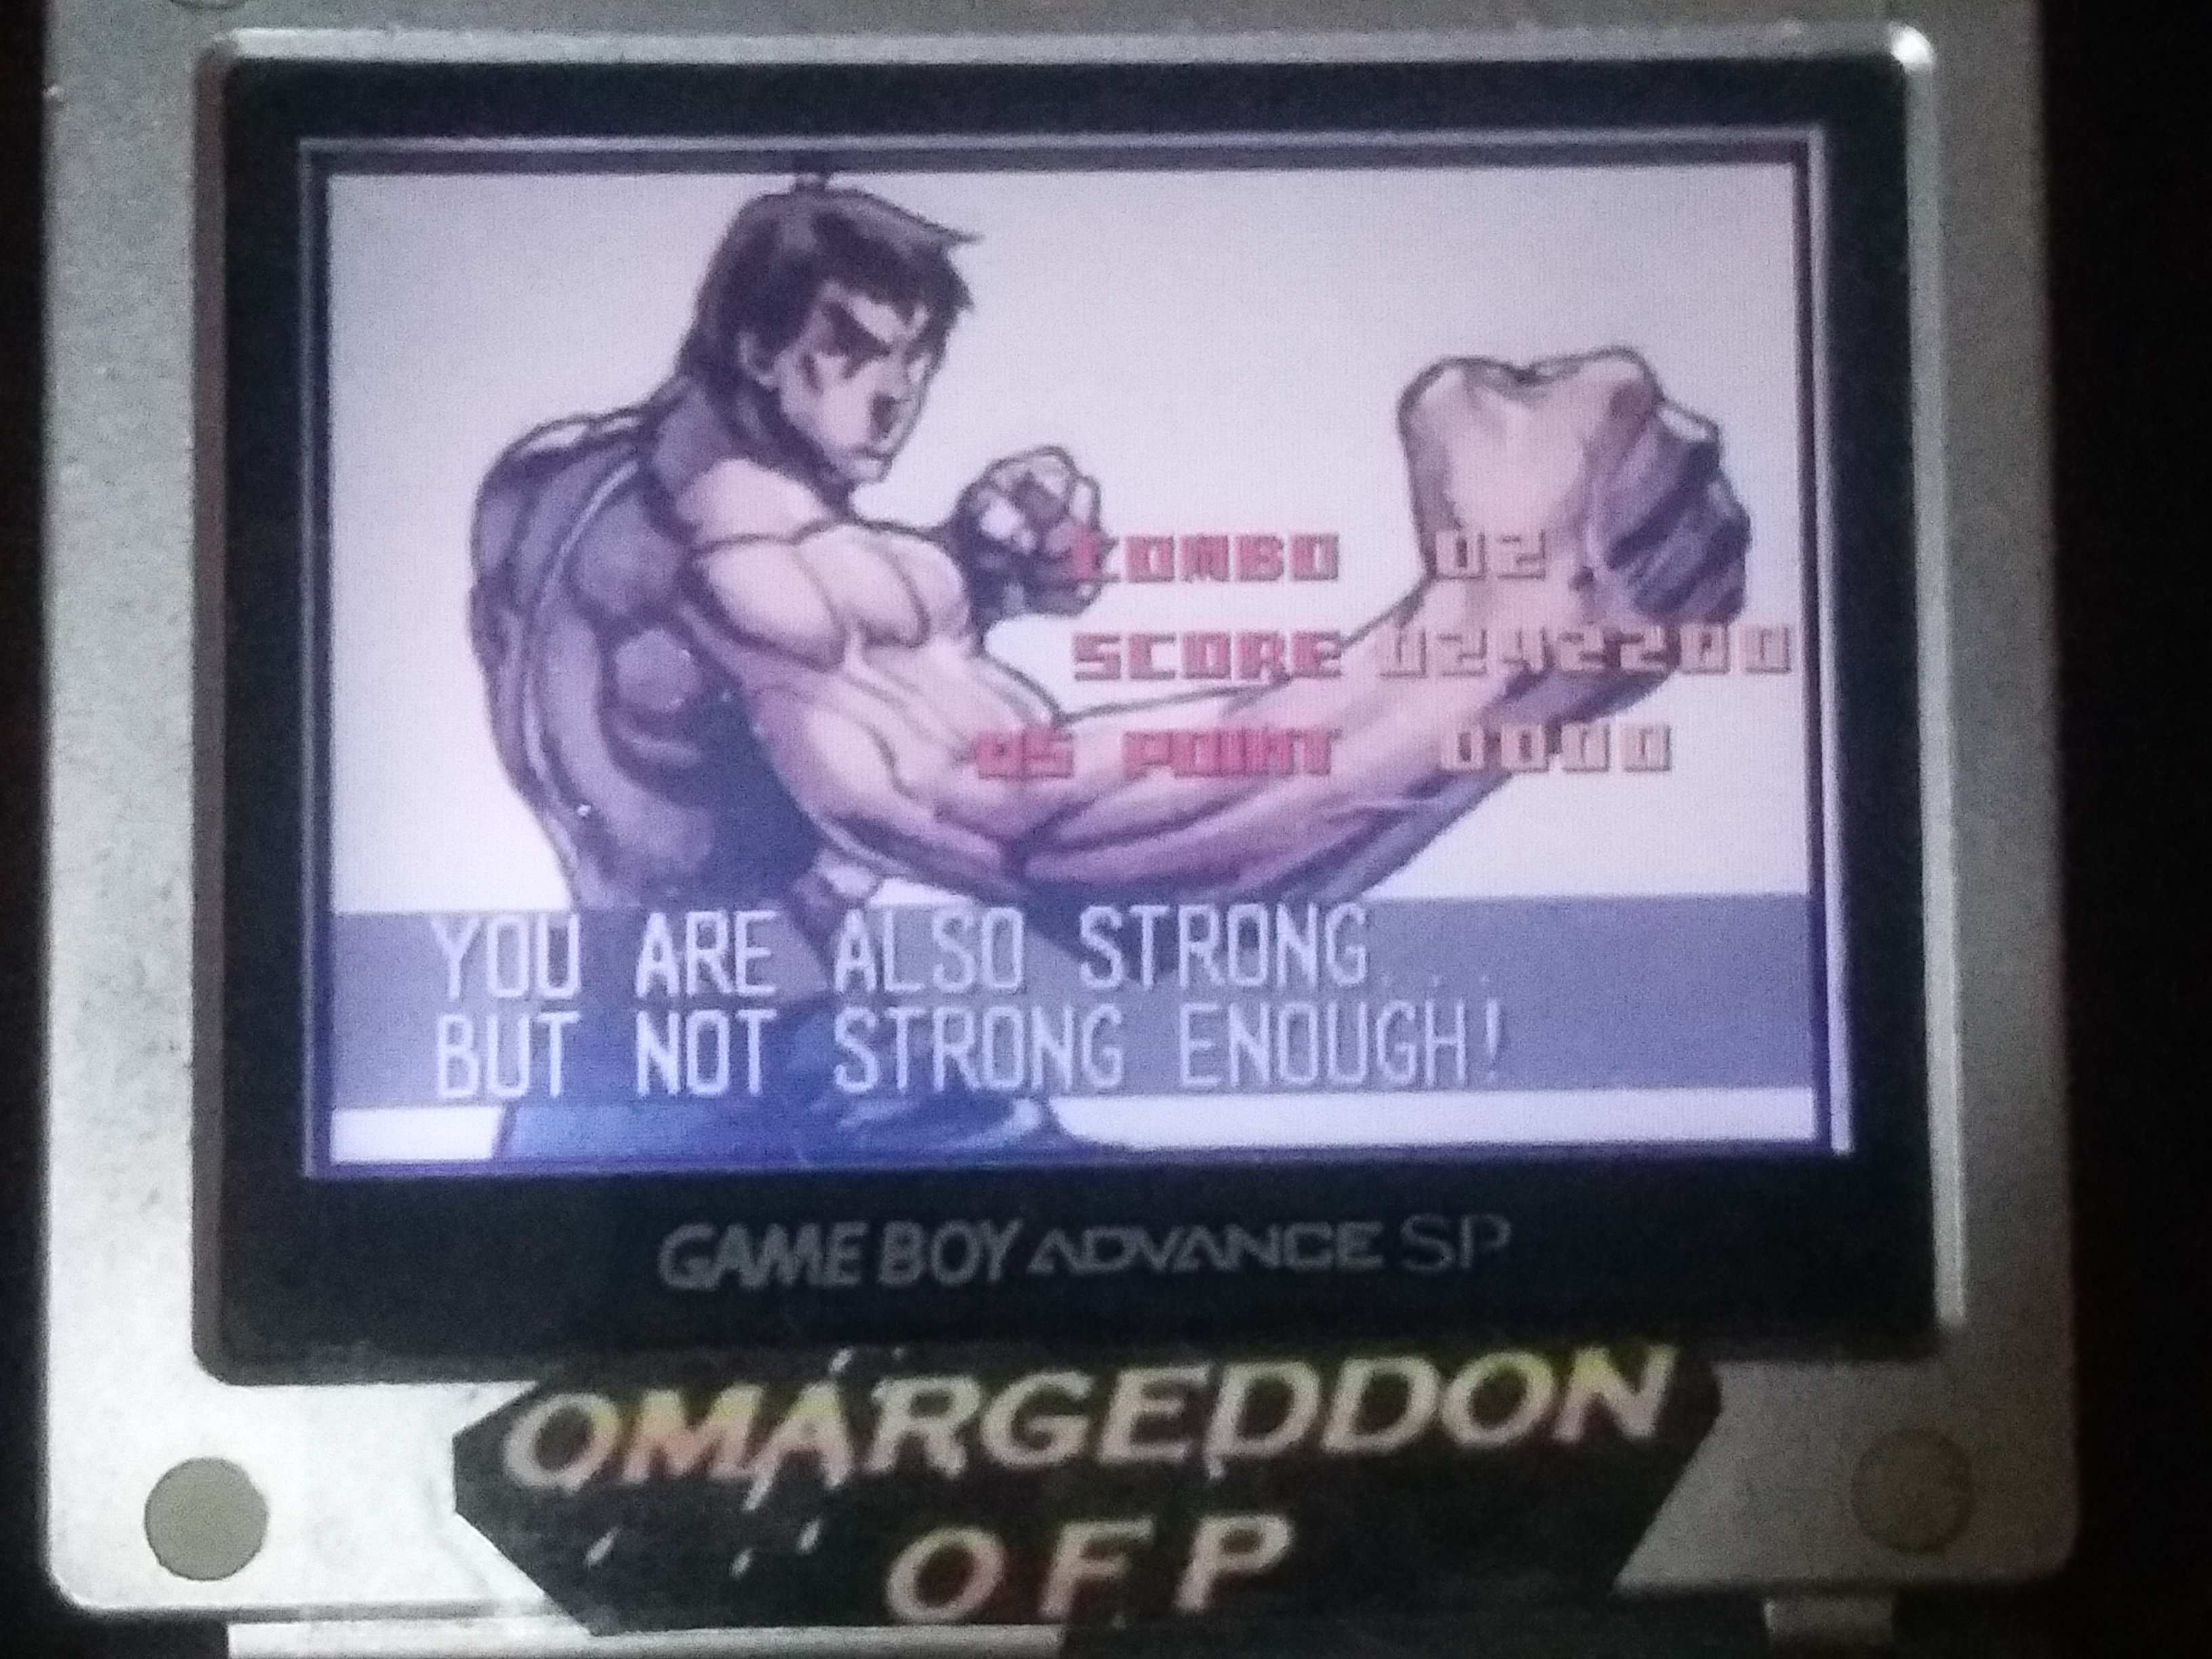 omargeddon: Super Street Fighter II Turbo Revival [Arcade Mode / Difficulty: Level 2] (GBA) 242,200 points on 2018-01-17 15:05:28